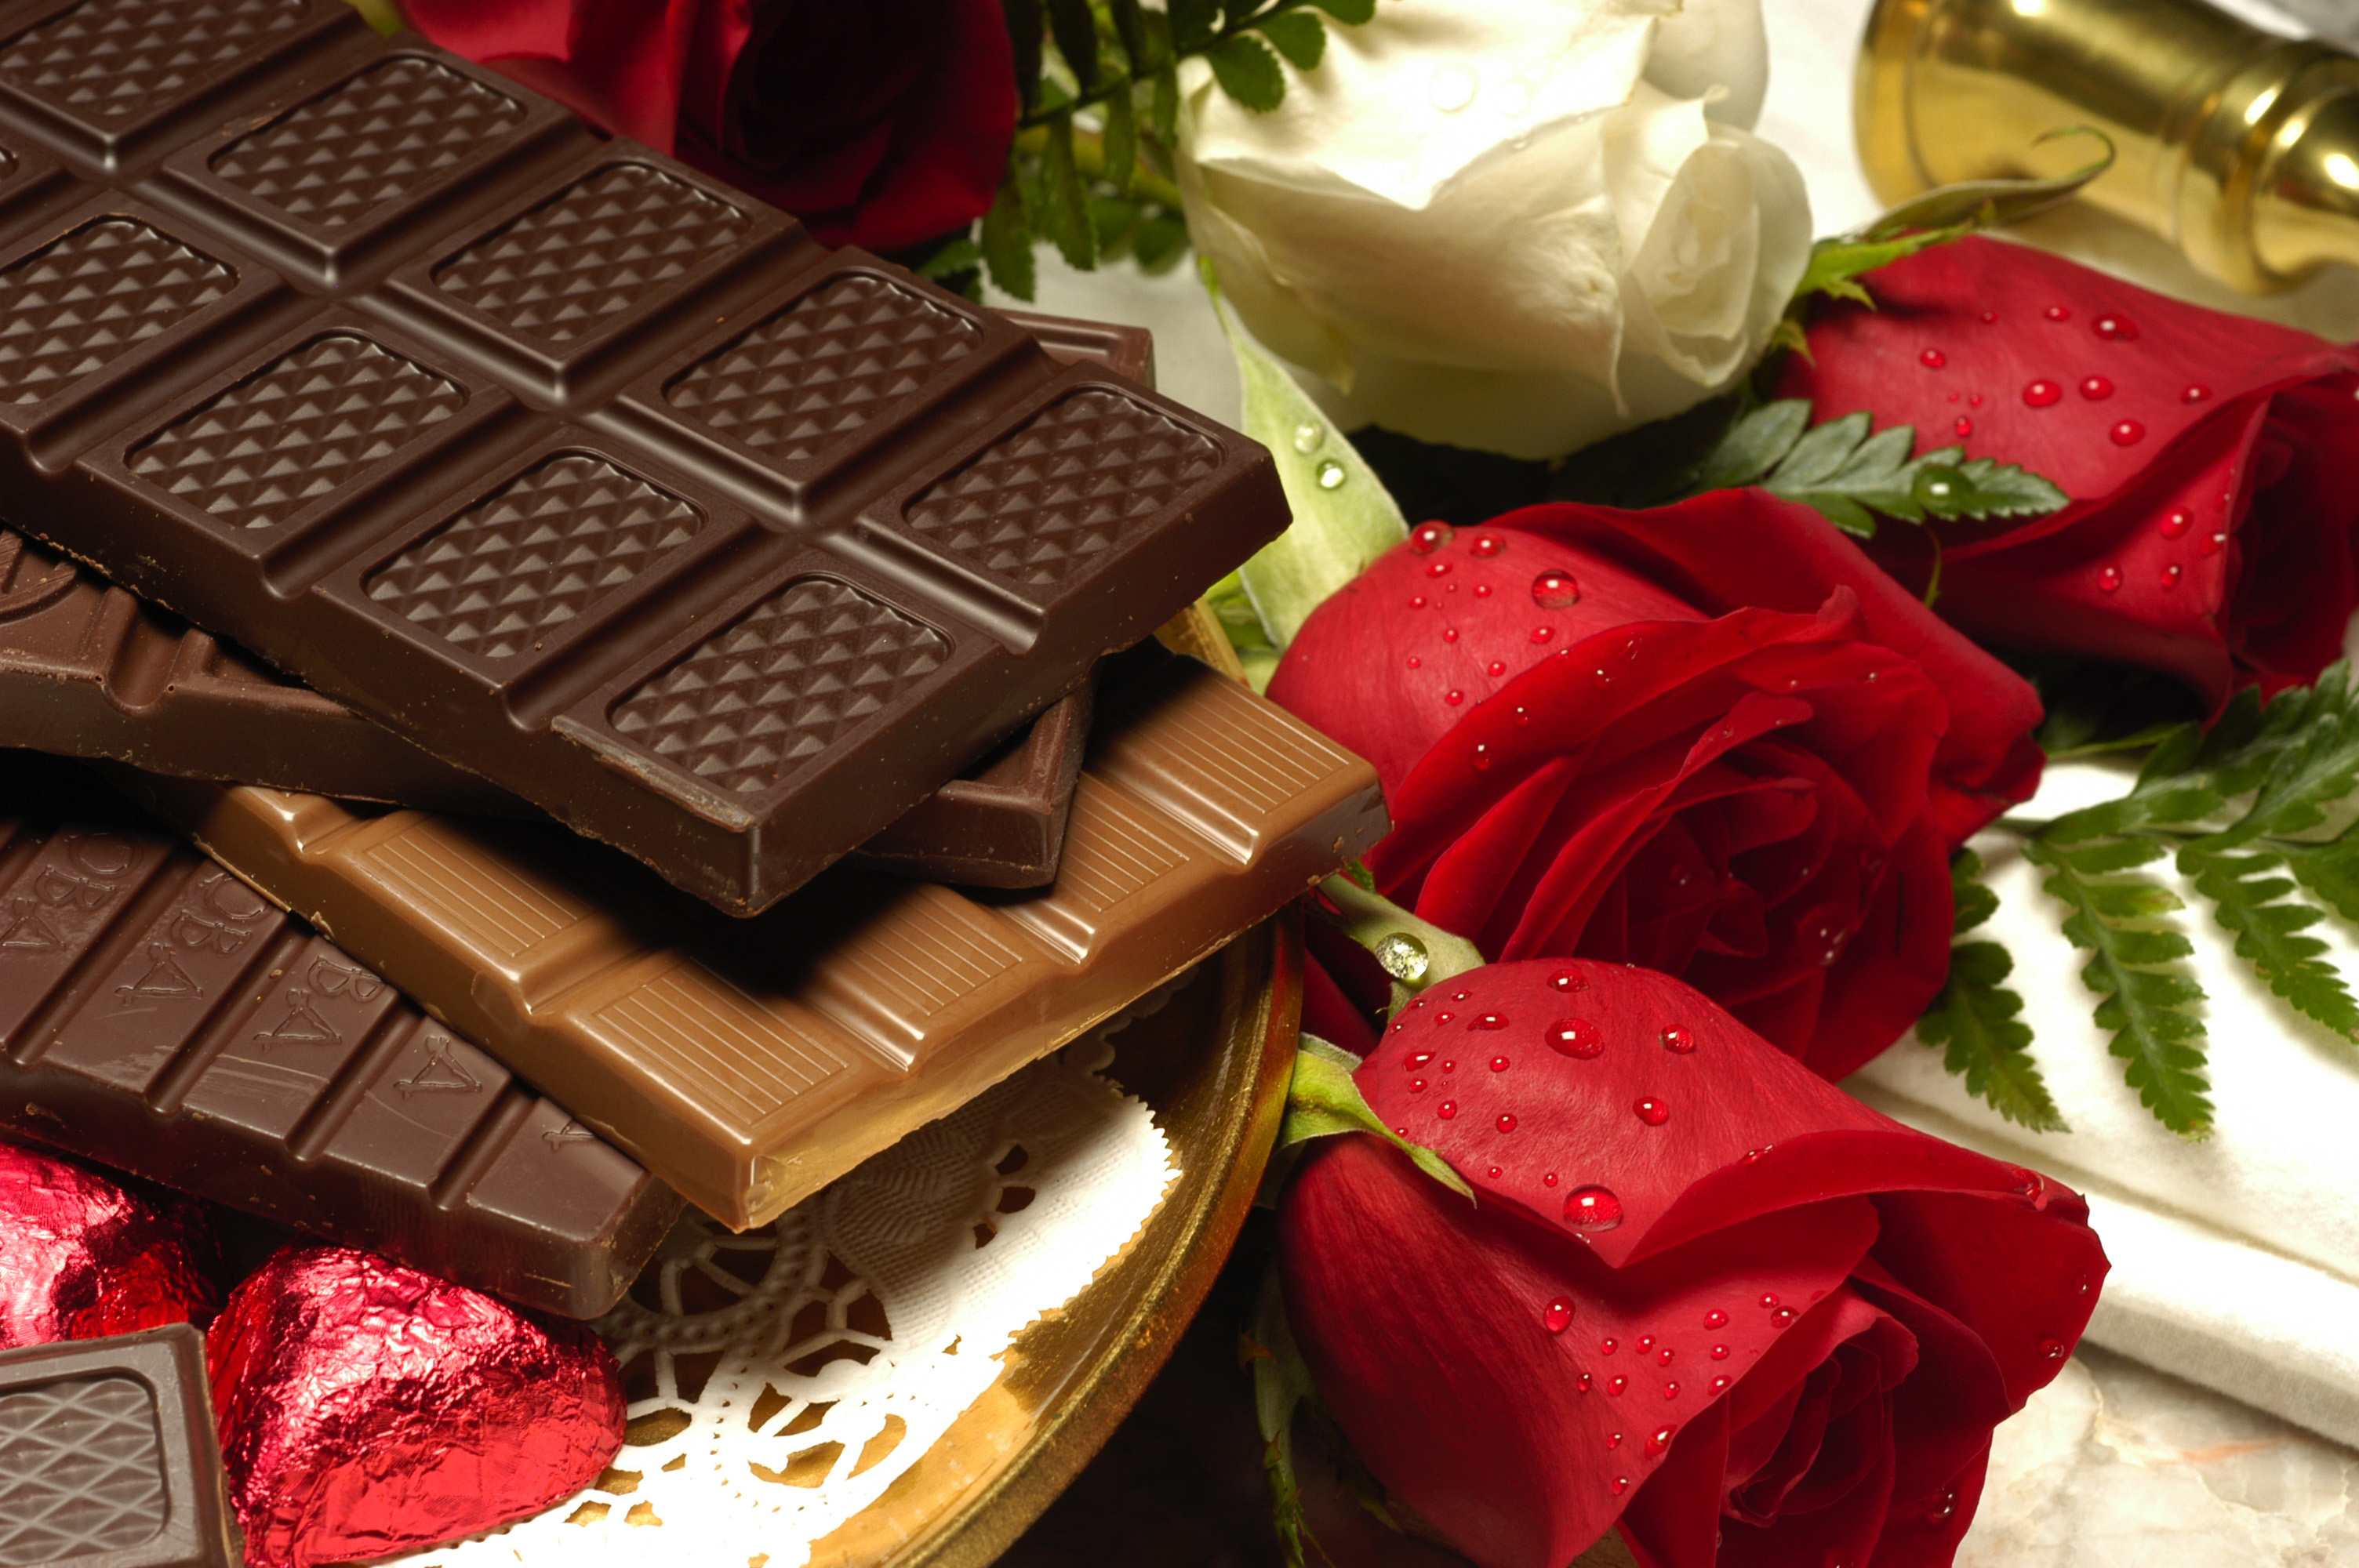 Food - Chocolate  - Candy - Food Wallpaper